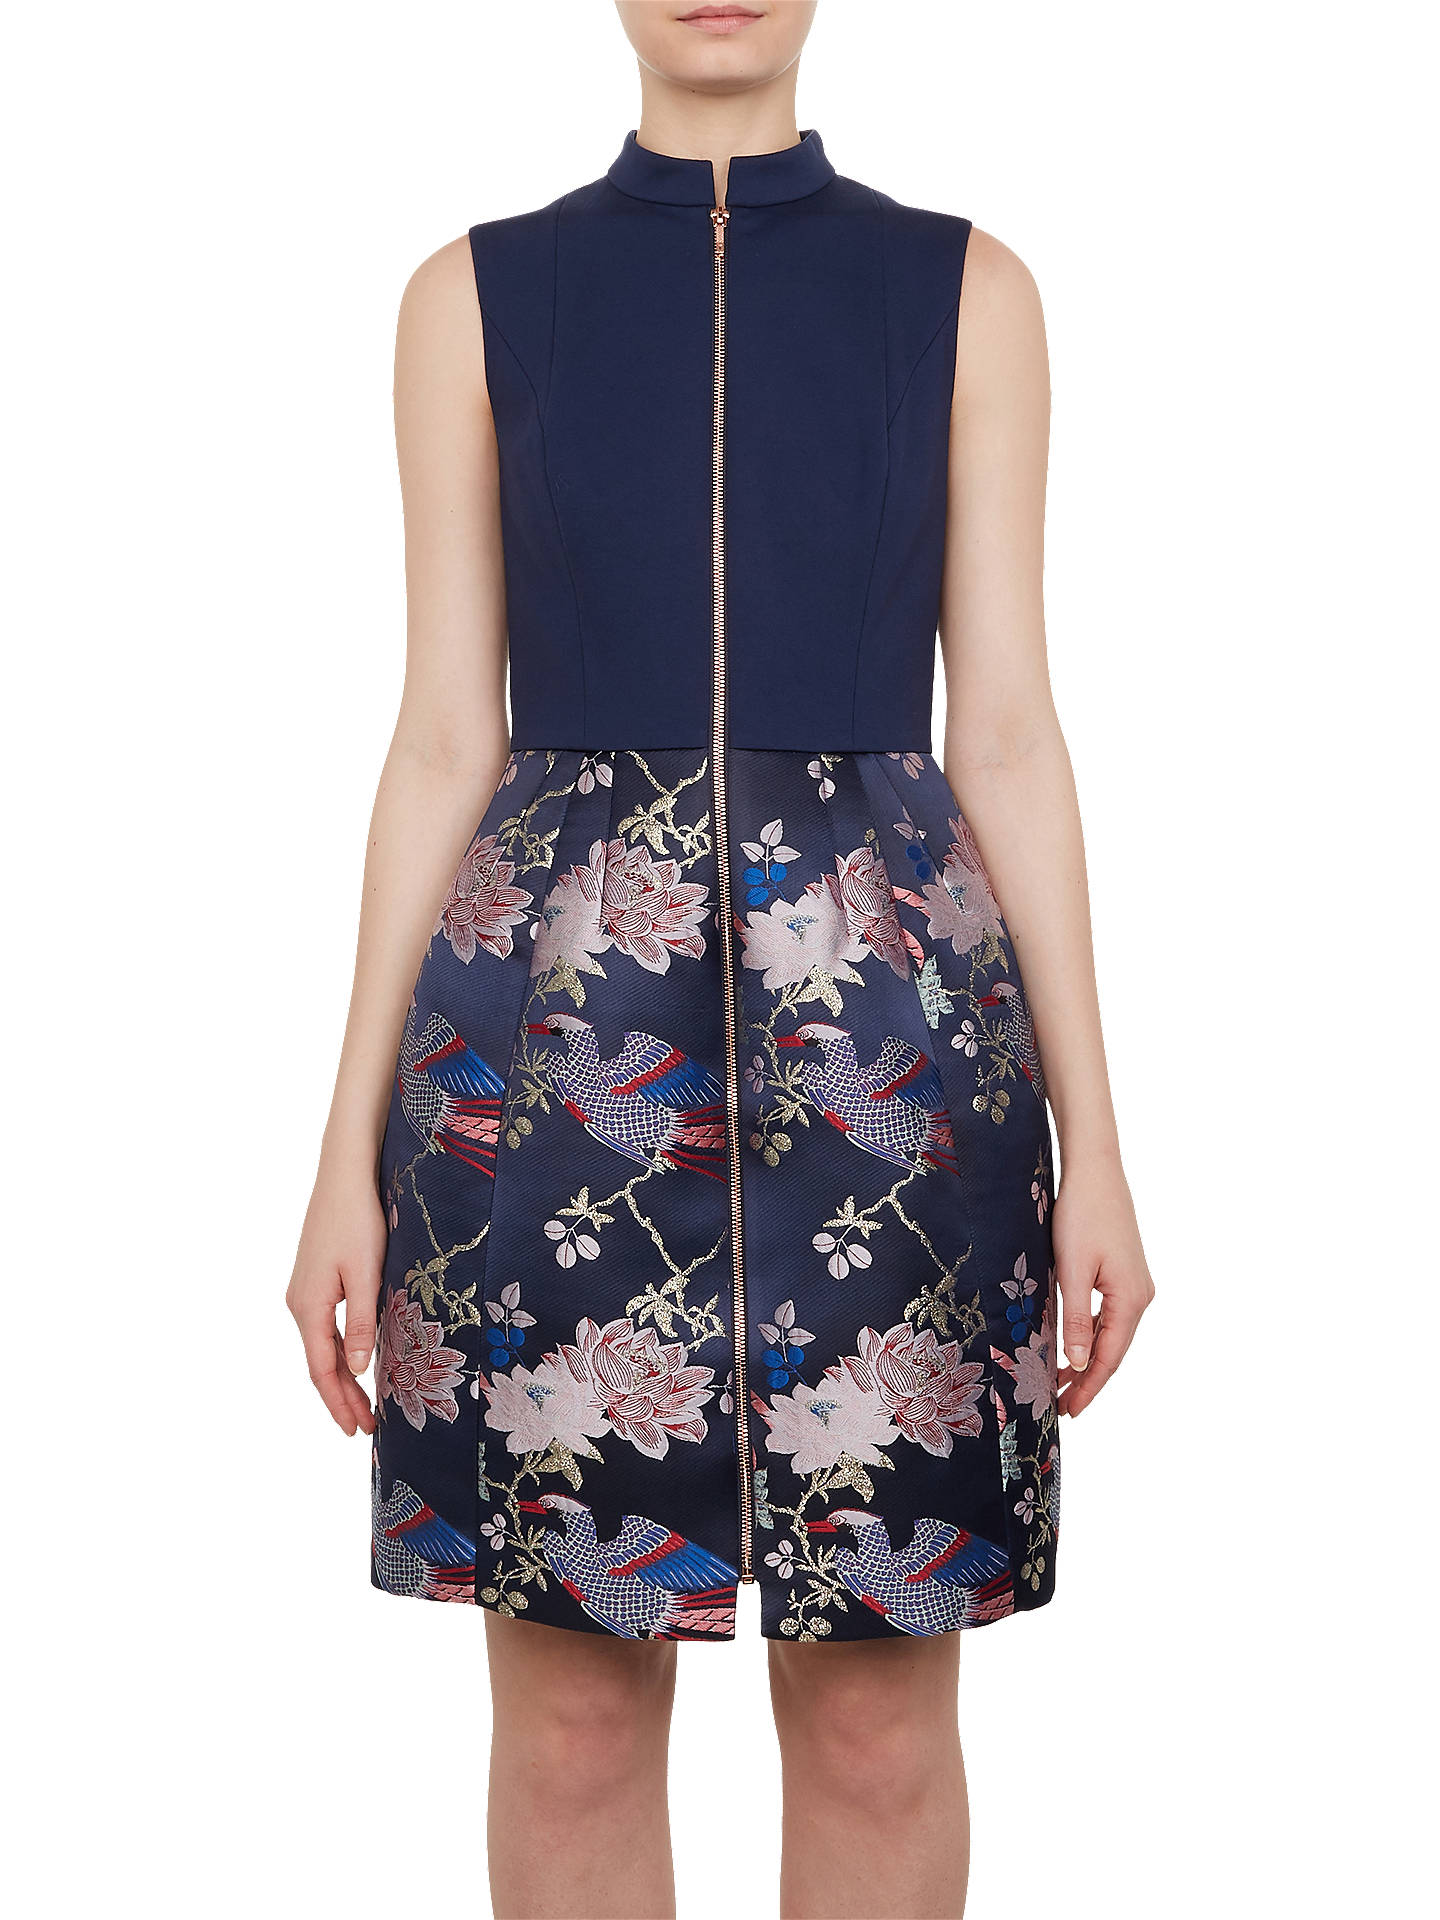 70af66749a4b7 Buy Ted Baker Chinoiserie Jacquard Zipped Dress